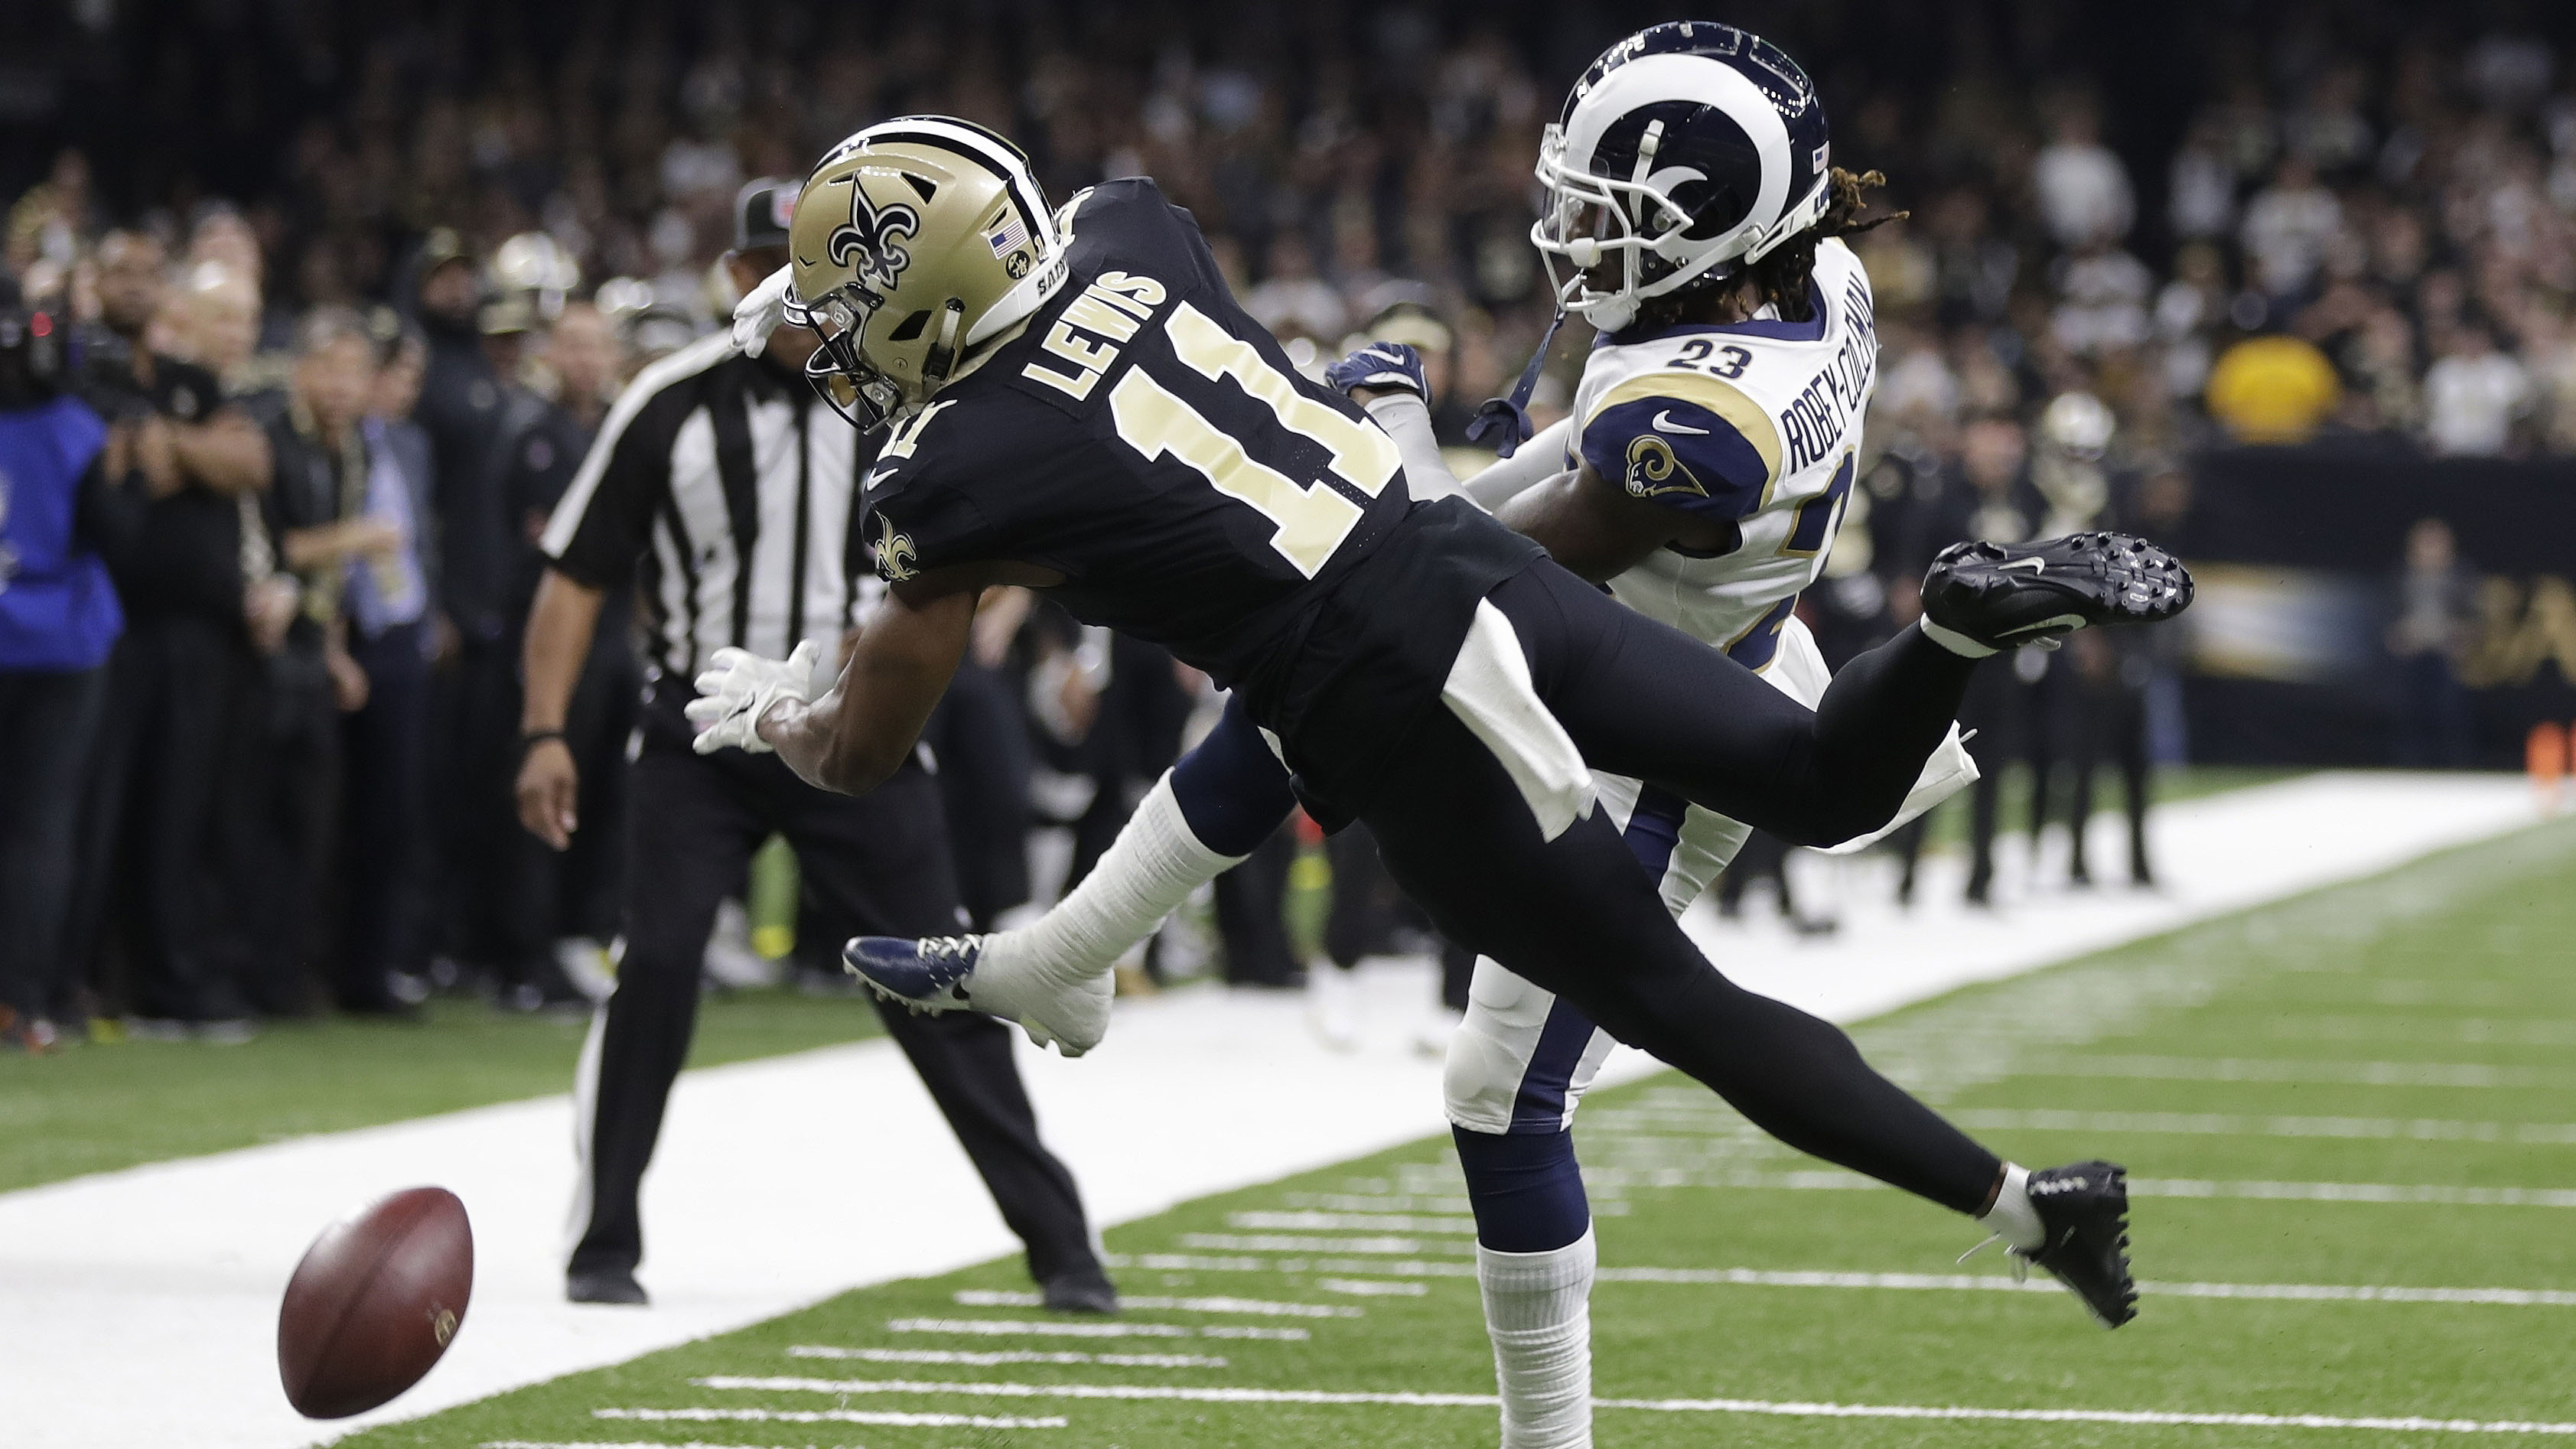 Sportsbook credits New Orleans Saints bets over uncalled penalty in NFC championship game